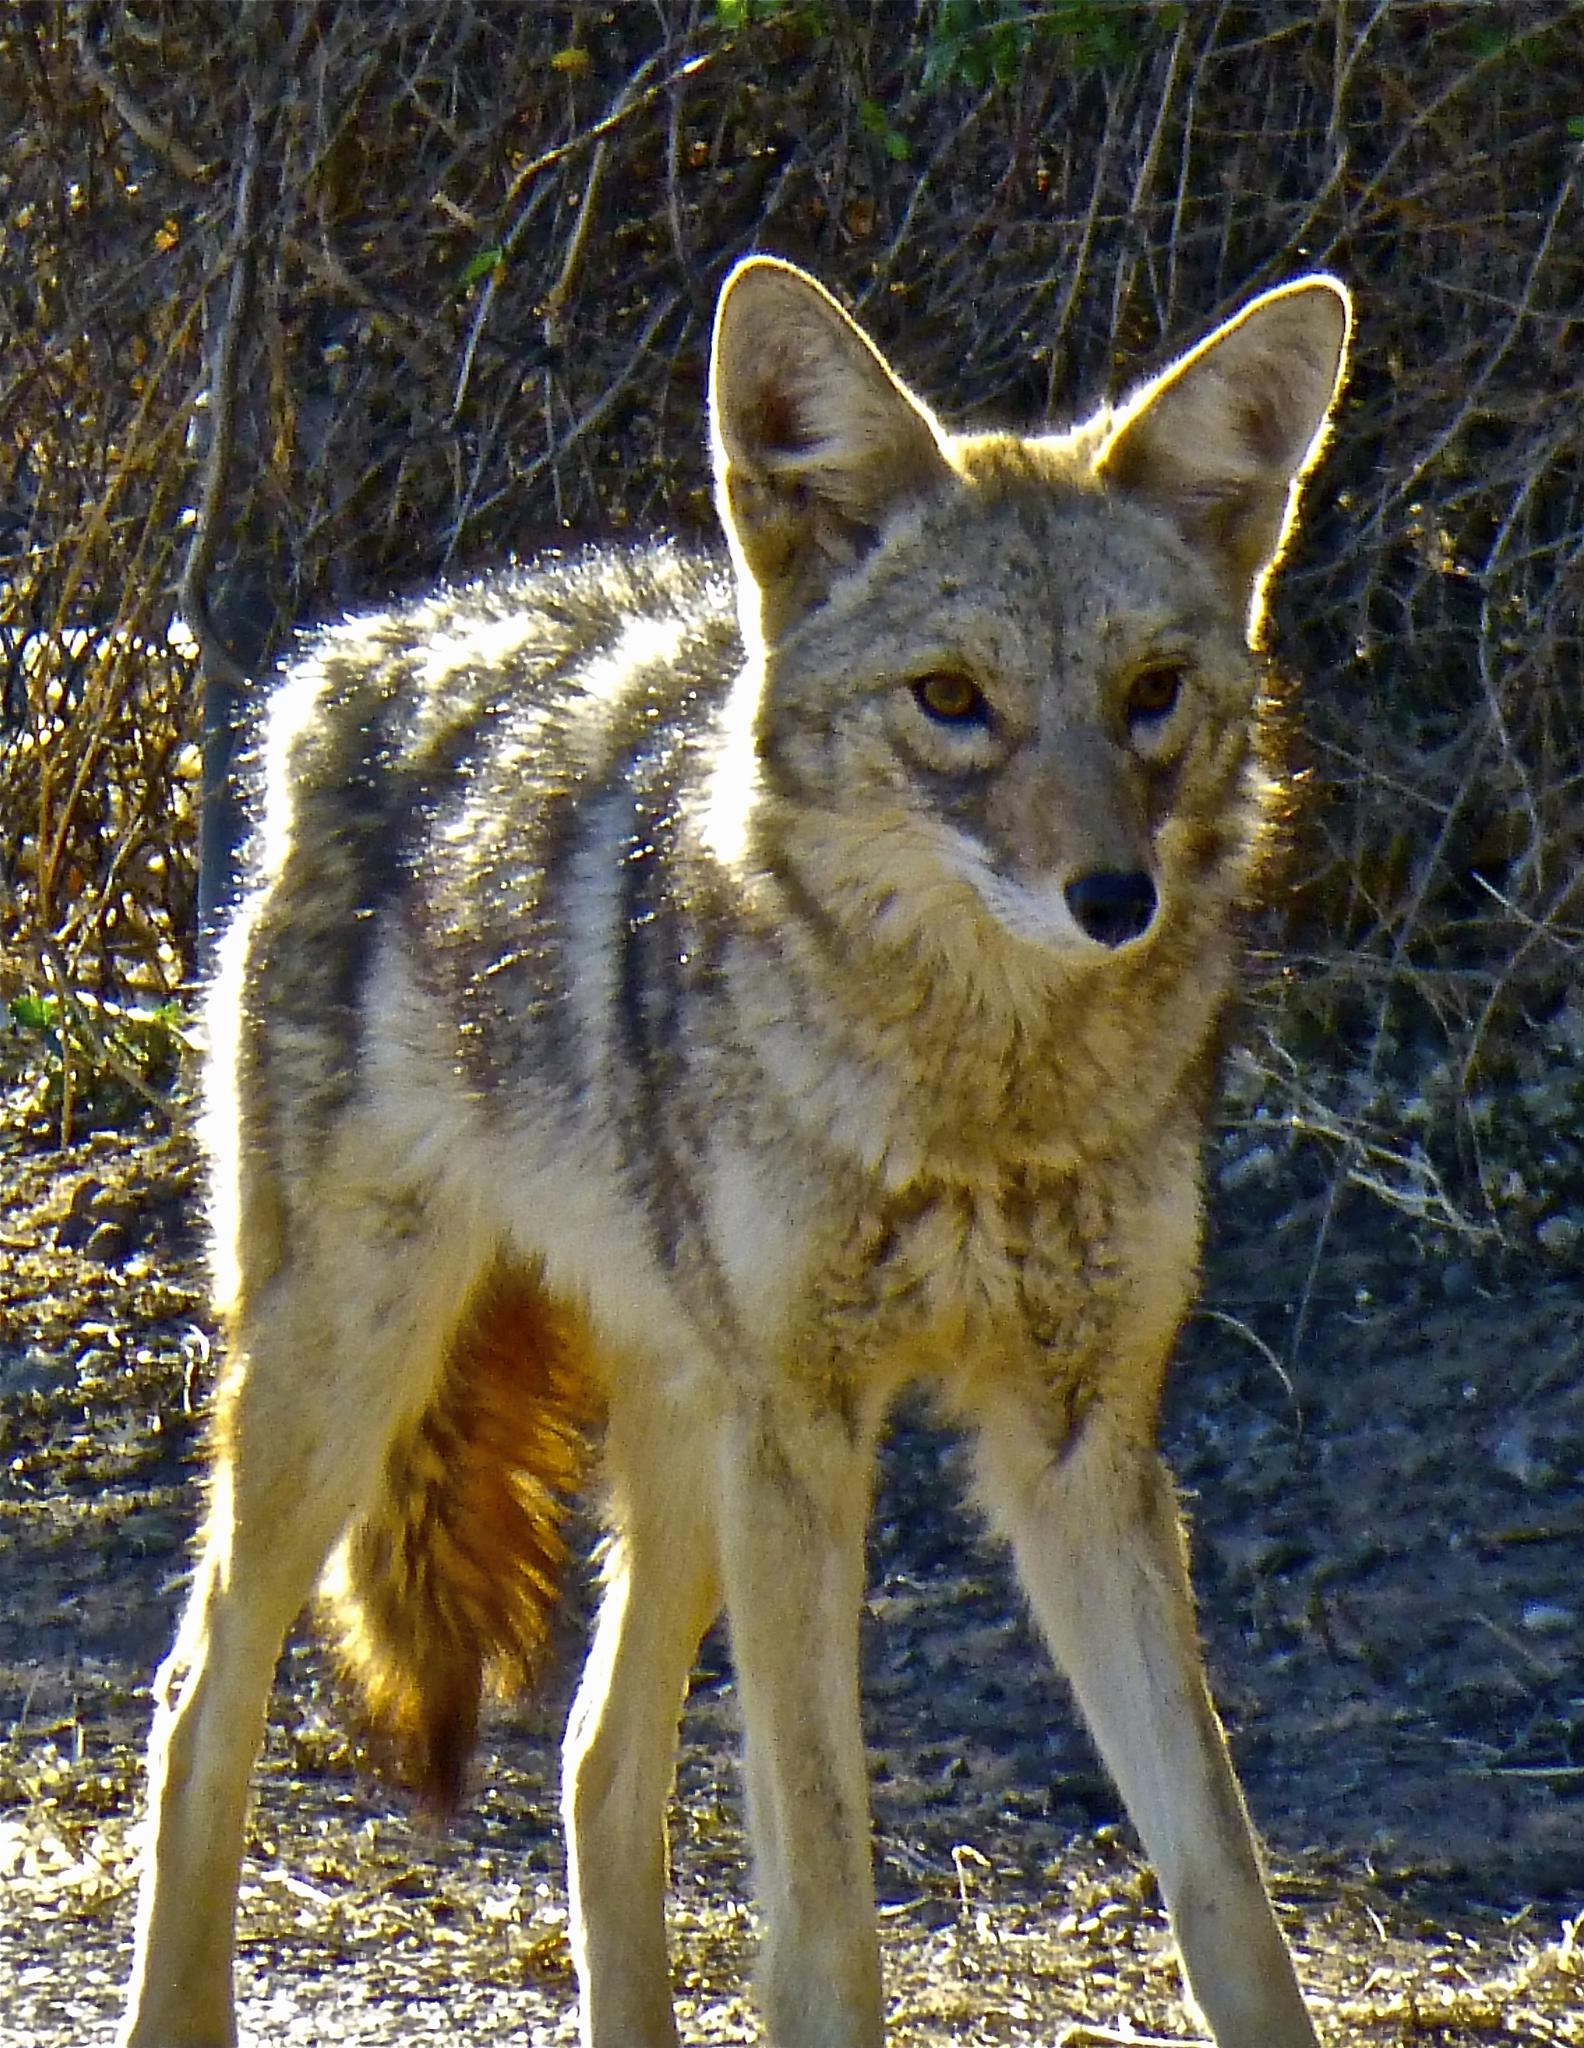 Coyote by Hunter Ten Broeck